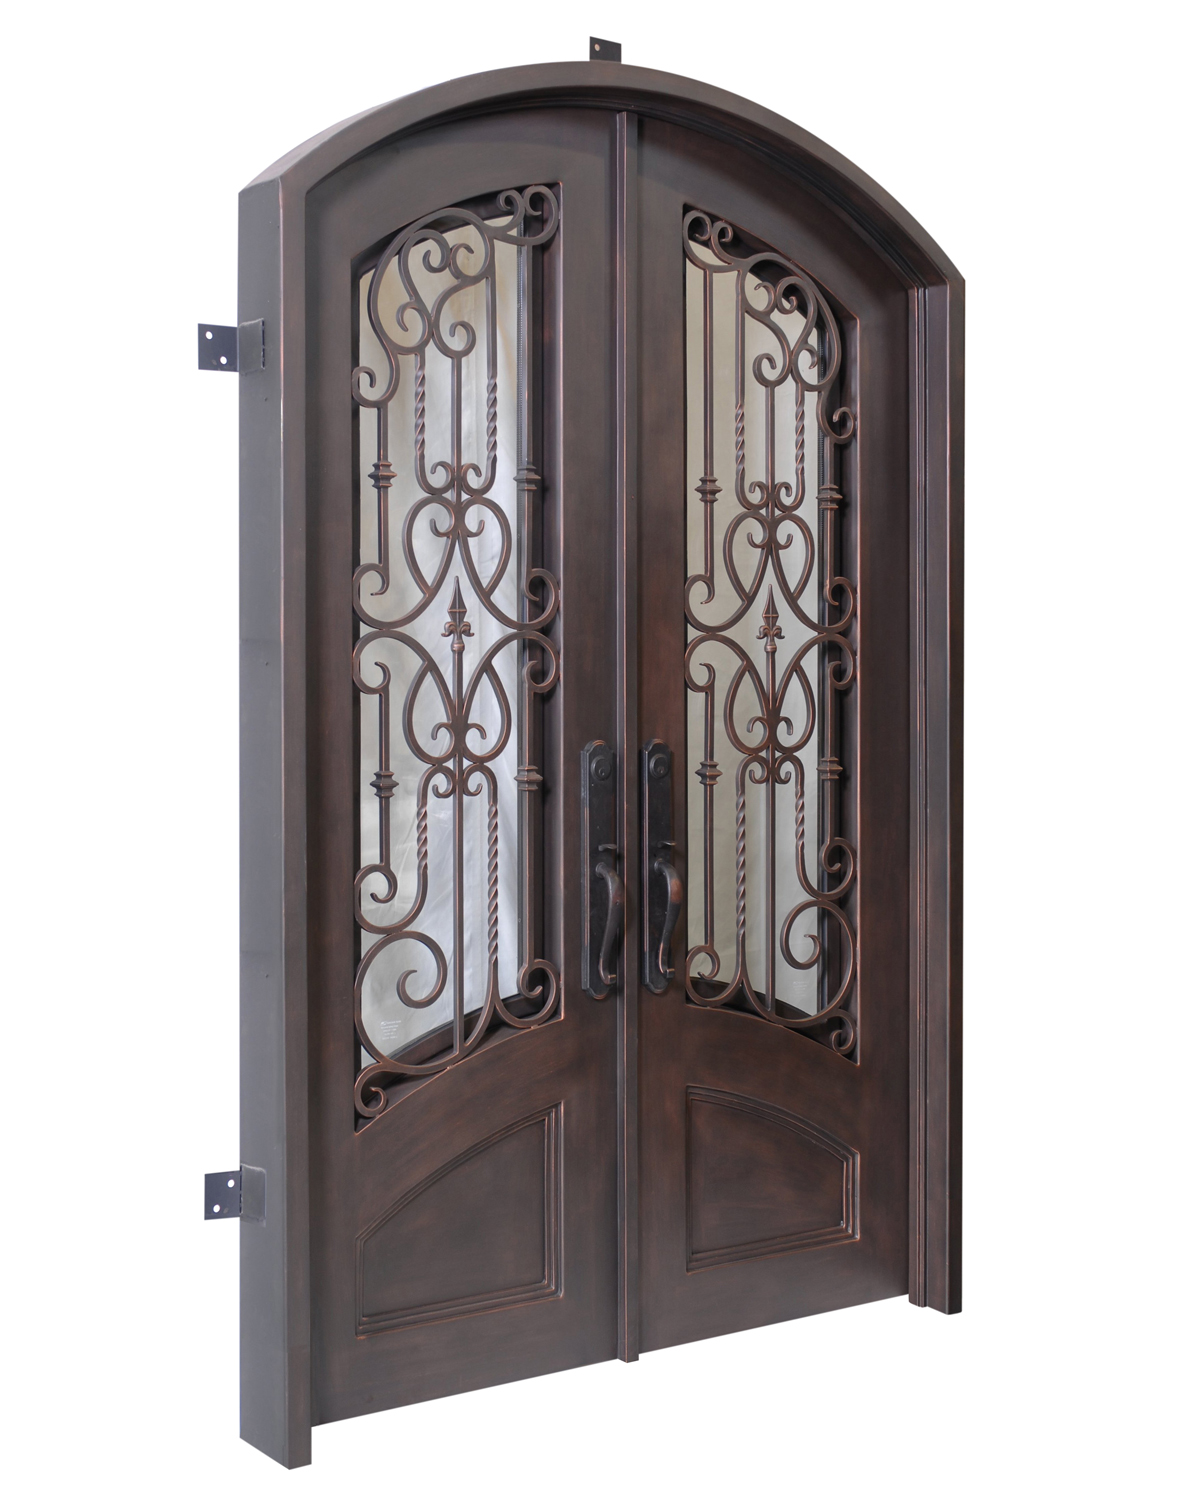 Verona hancrafted iron doors from Tasman Forge, Nelson